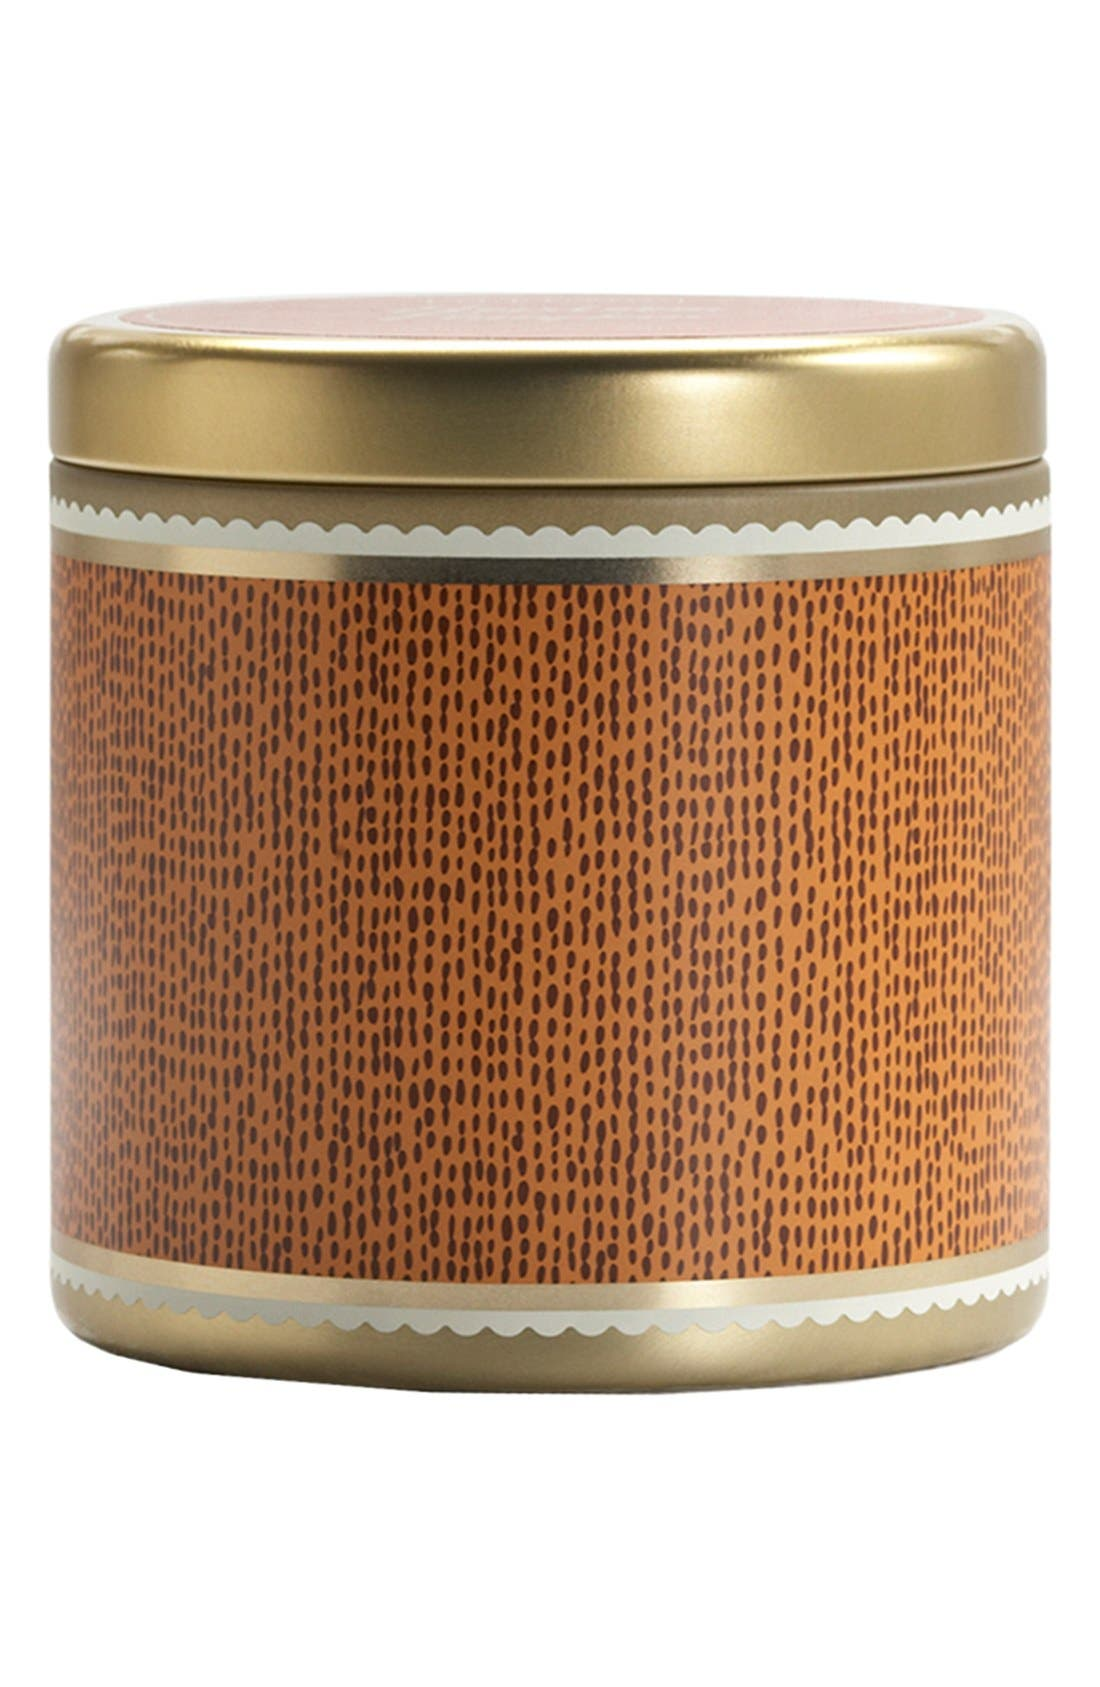 Alternate Image 1 Selected - ILLUME CANDLES Heirloom Pumpkin Tin - Large' Candle